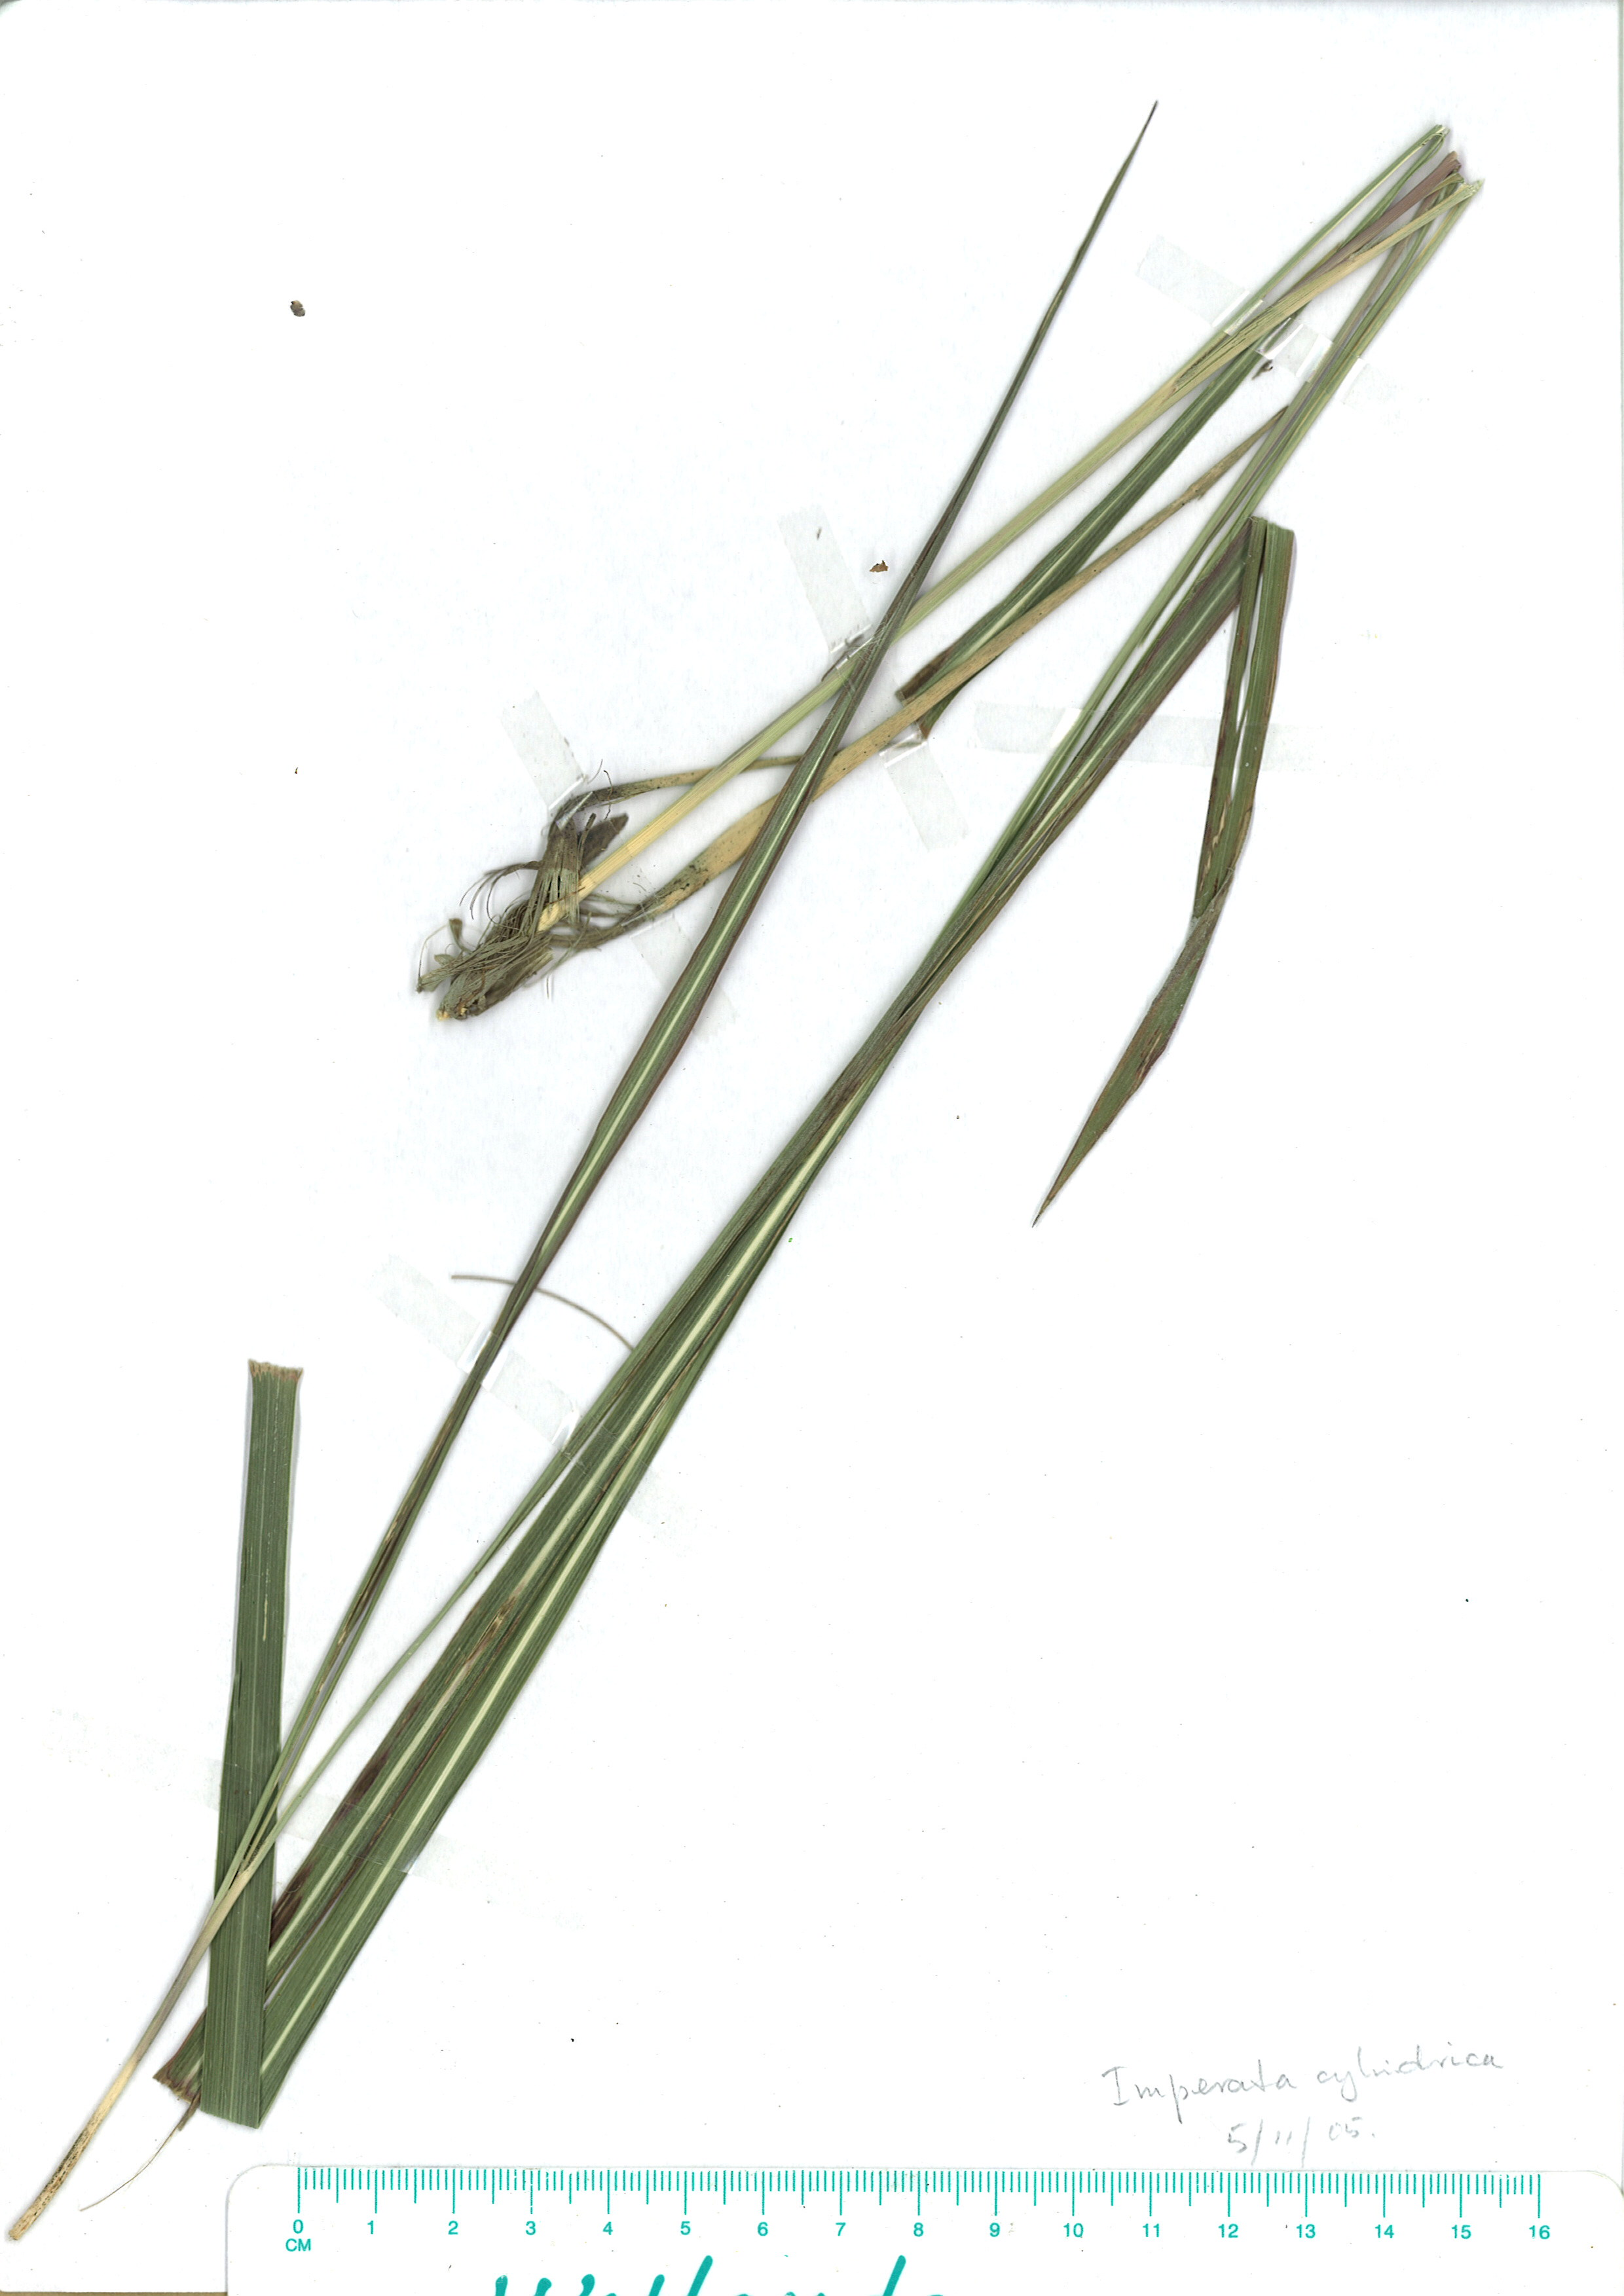 Scanned herbarium image of Imperata cylindrica